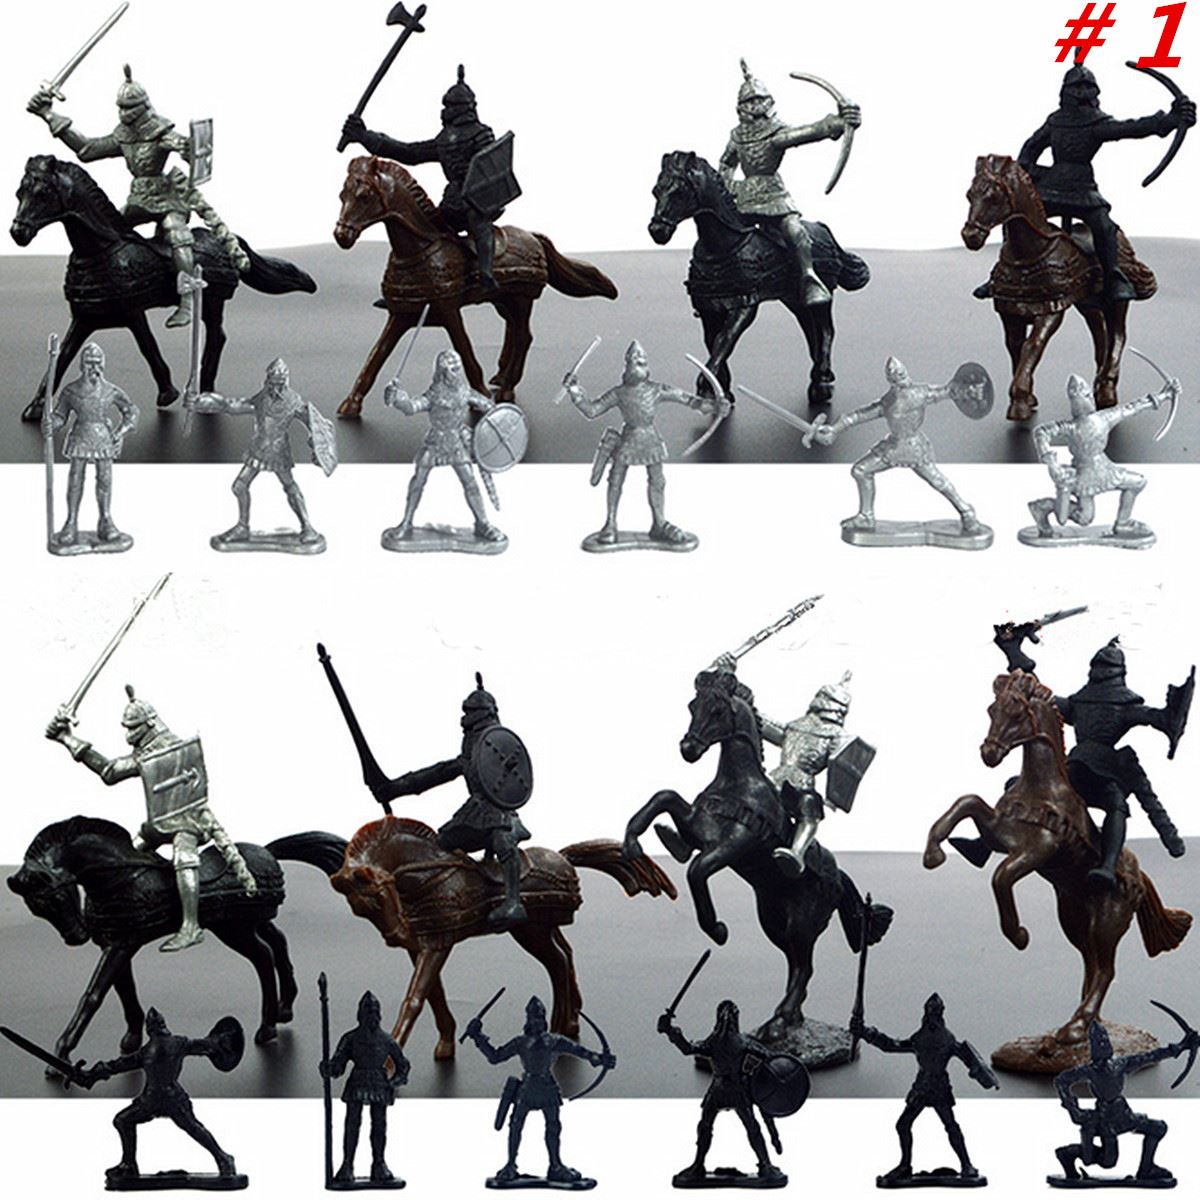 28pcs/set Knights Warrior Horses Medieval Toy Soldiers Figures Playset Mini Model Toys Gift Decor For Children Adult ancient knight 28pcs set soldiers and horses medieval model toy soldiers figures